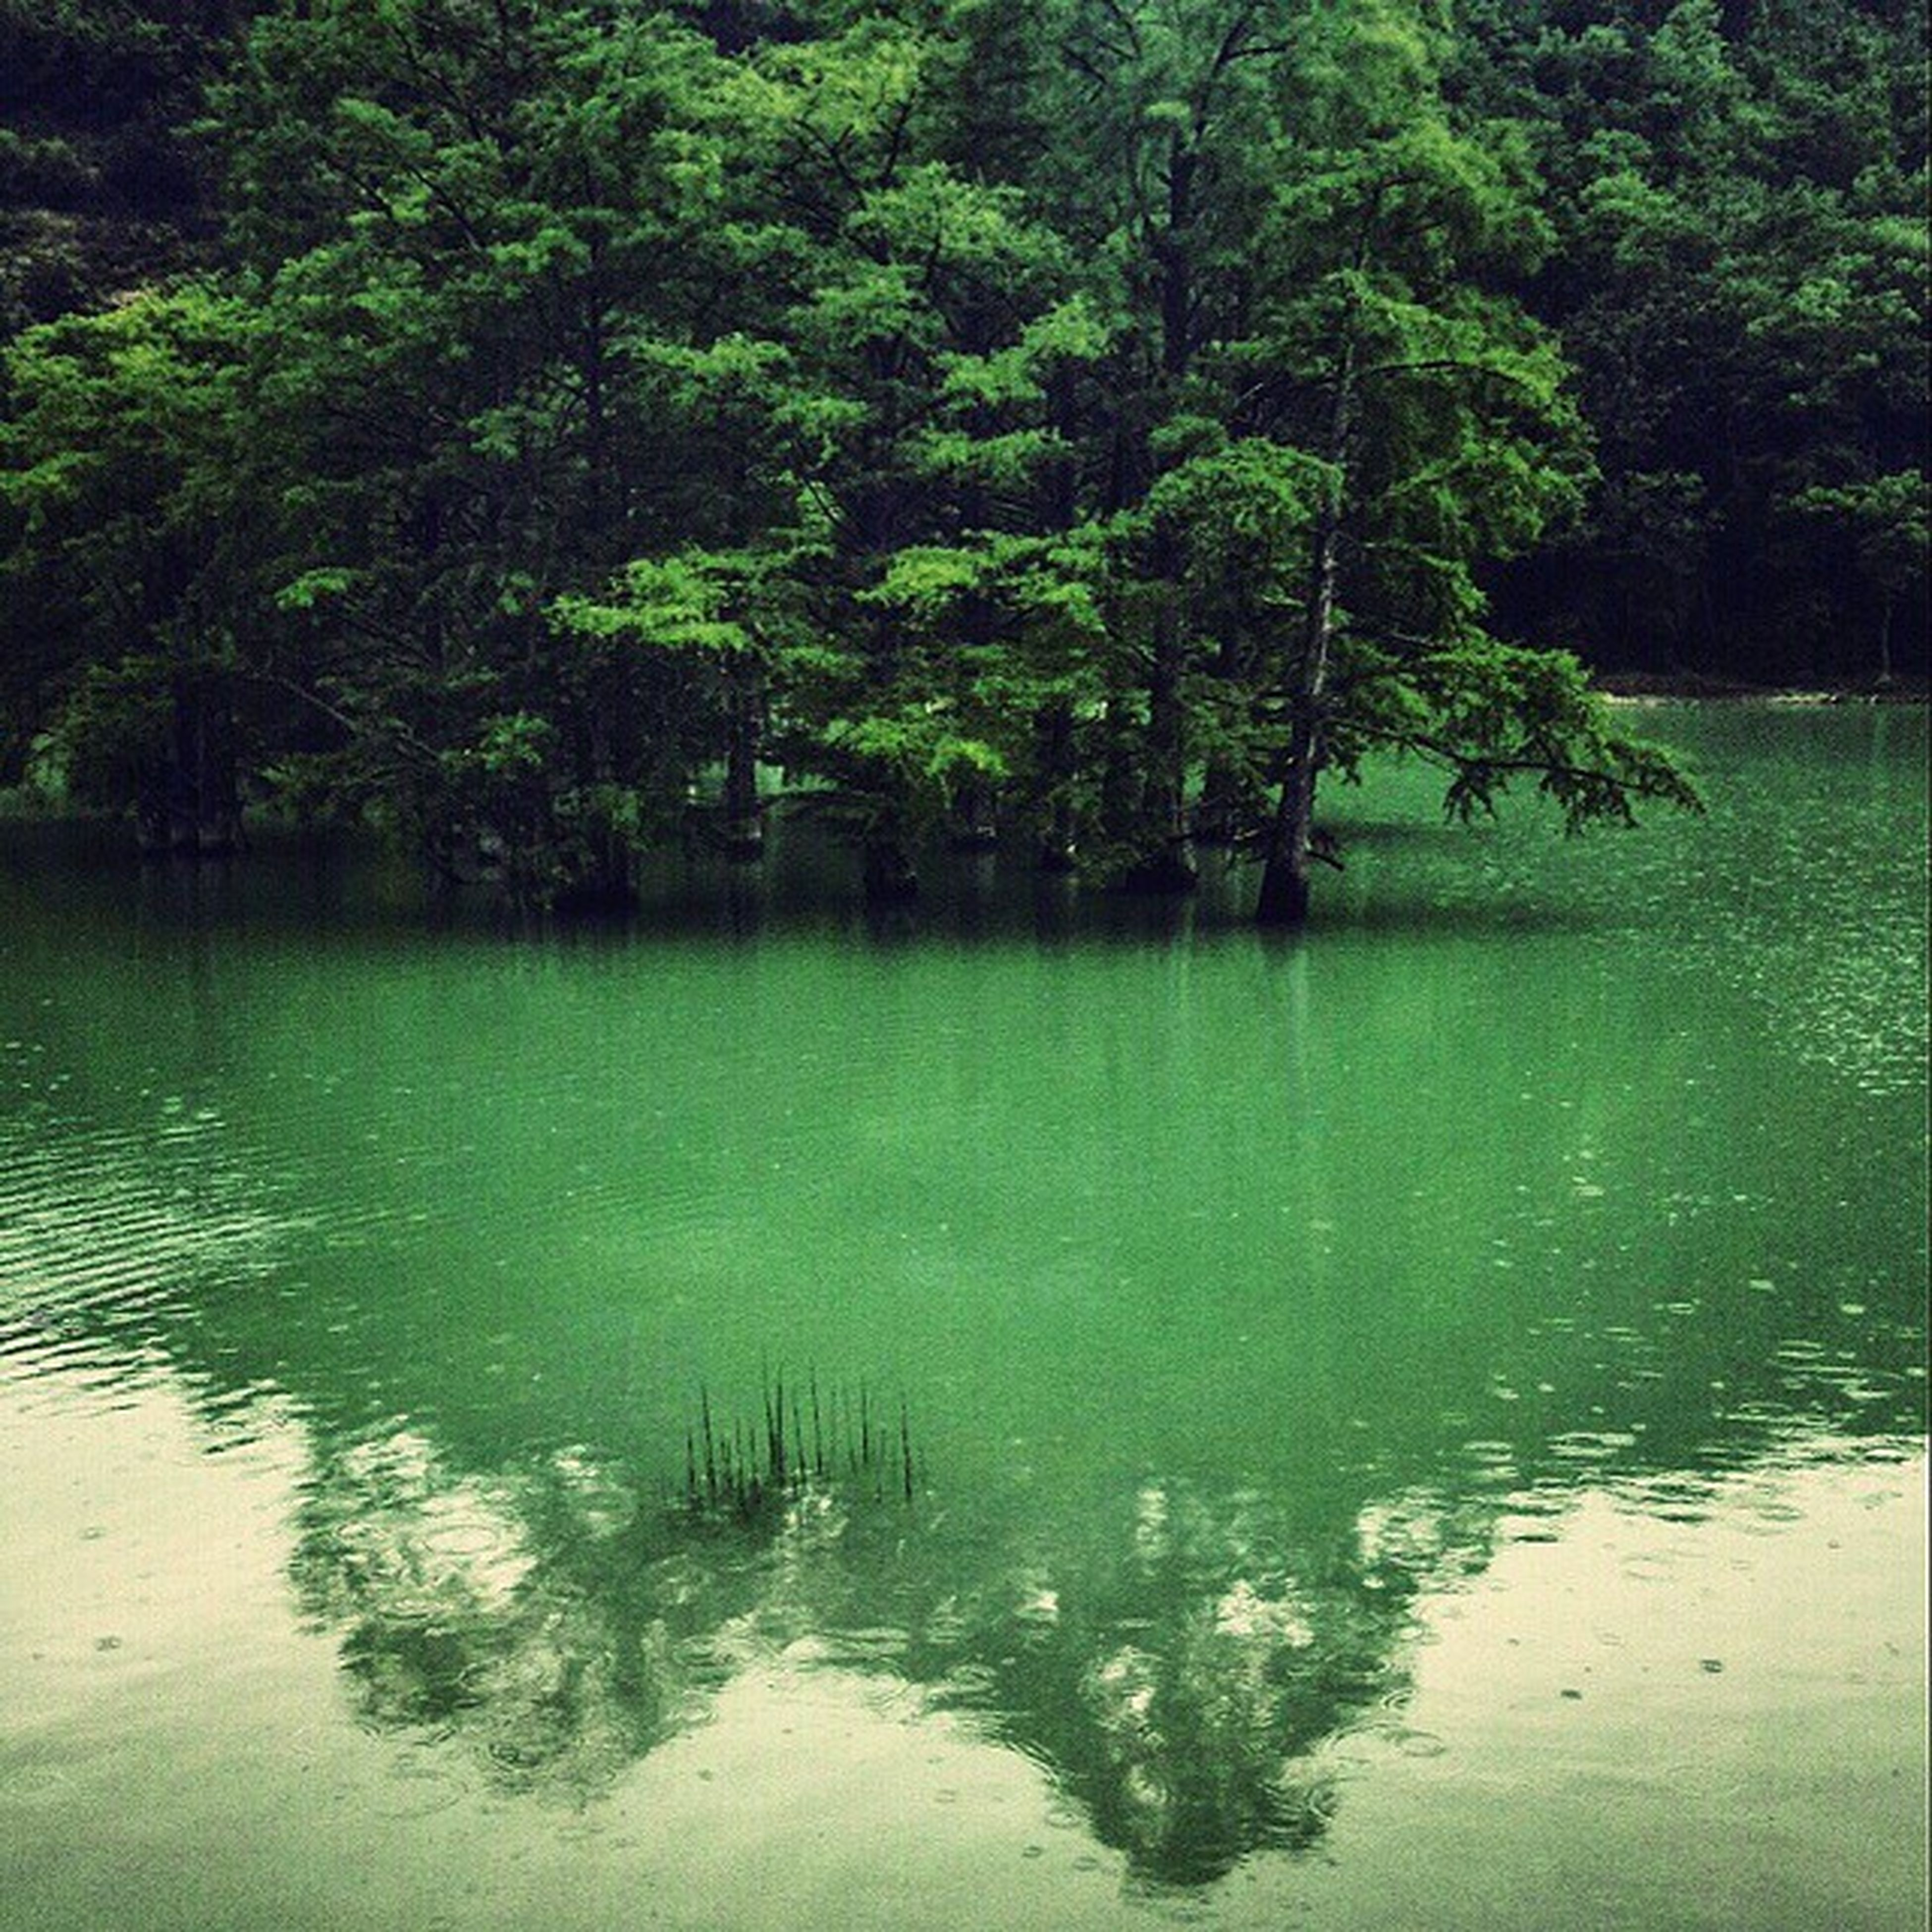 water, tree, lake, reflection, tranquility, tranquil scene, waterfront, beauty in nature, green color, nature, scenics, growth, bird, rippled, animal themes, forest, idyllic, wildlife, river, day